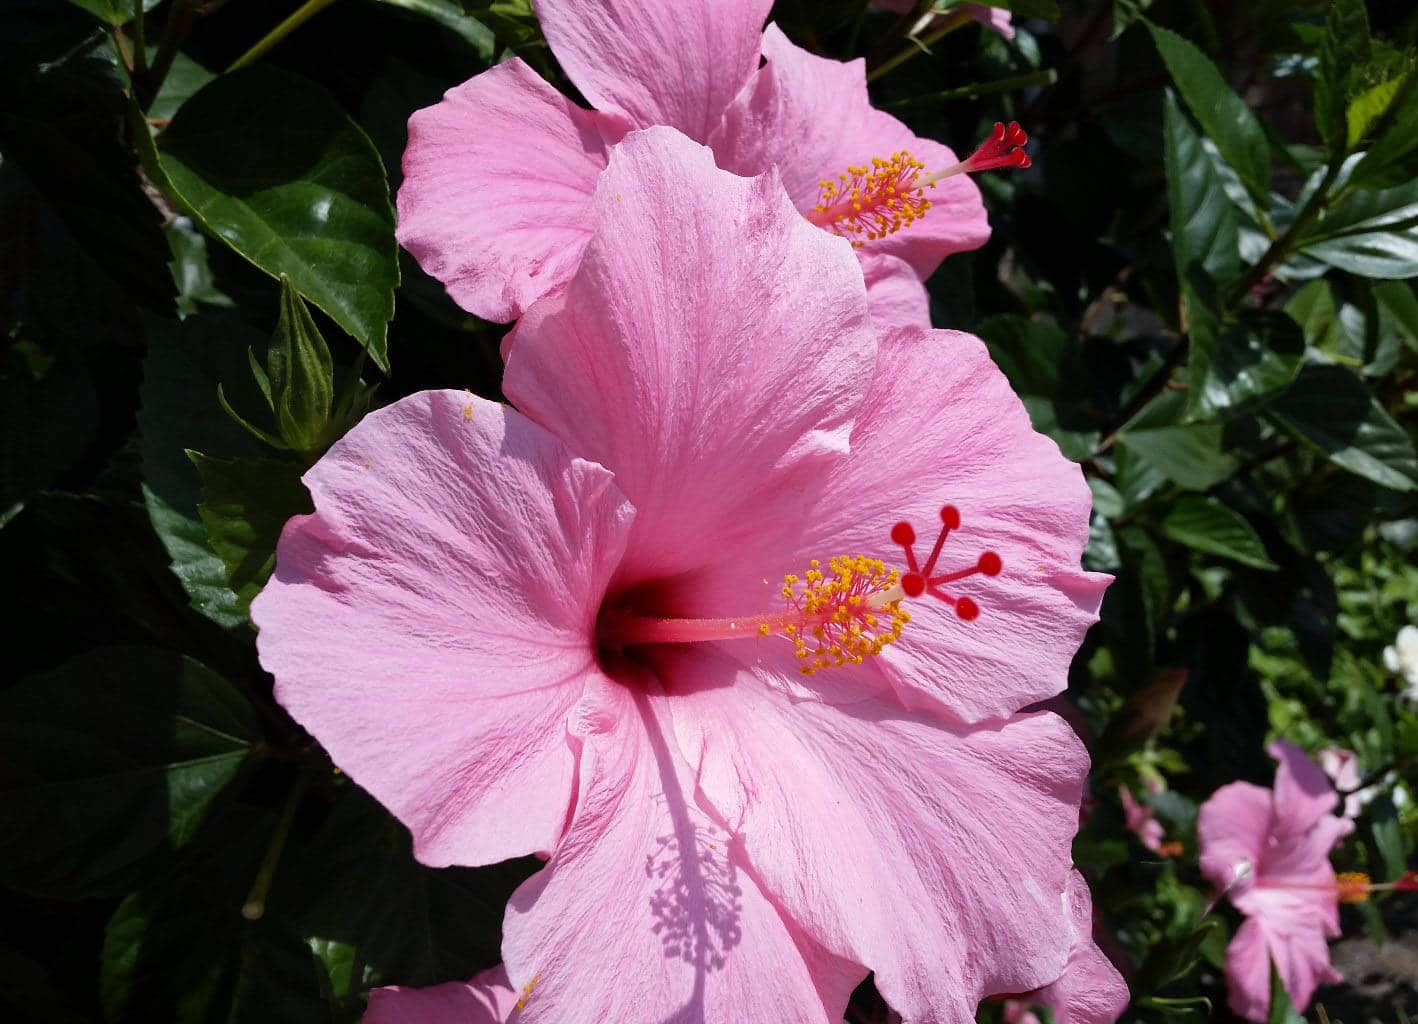 This flowering hibiscus in Seminole pink grows next to several other blossoms on a large bush.